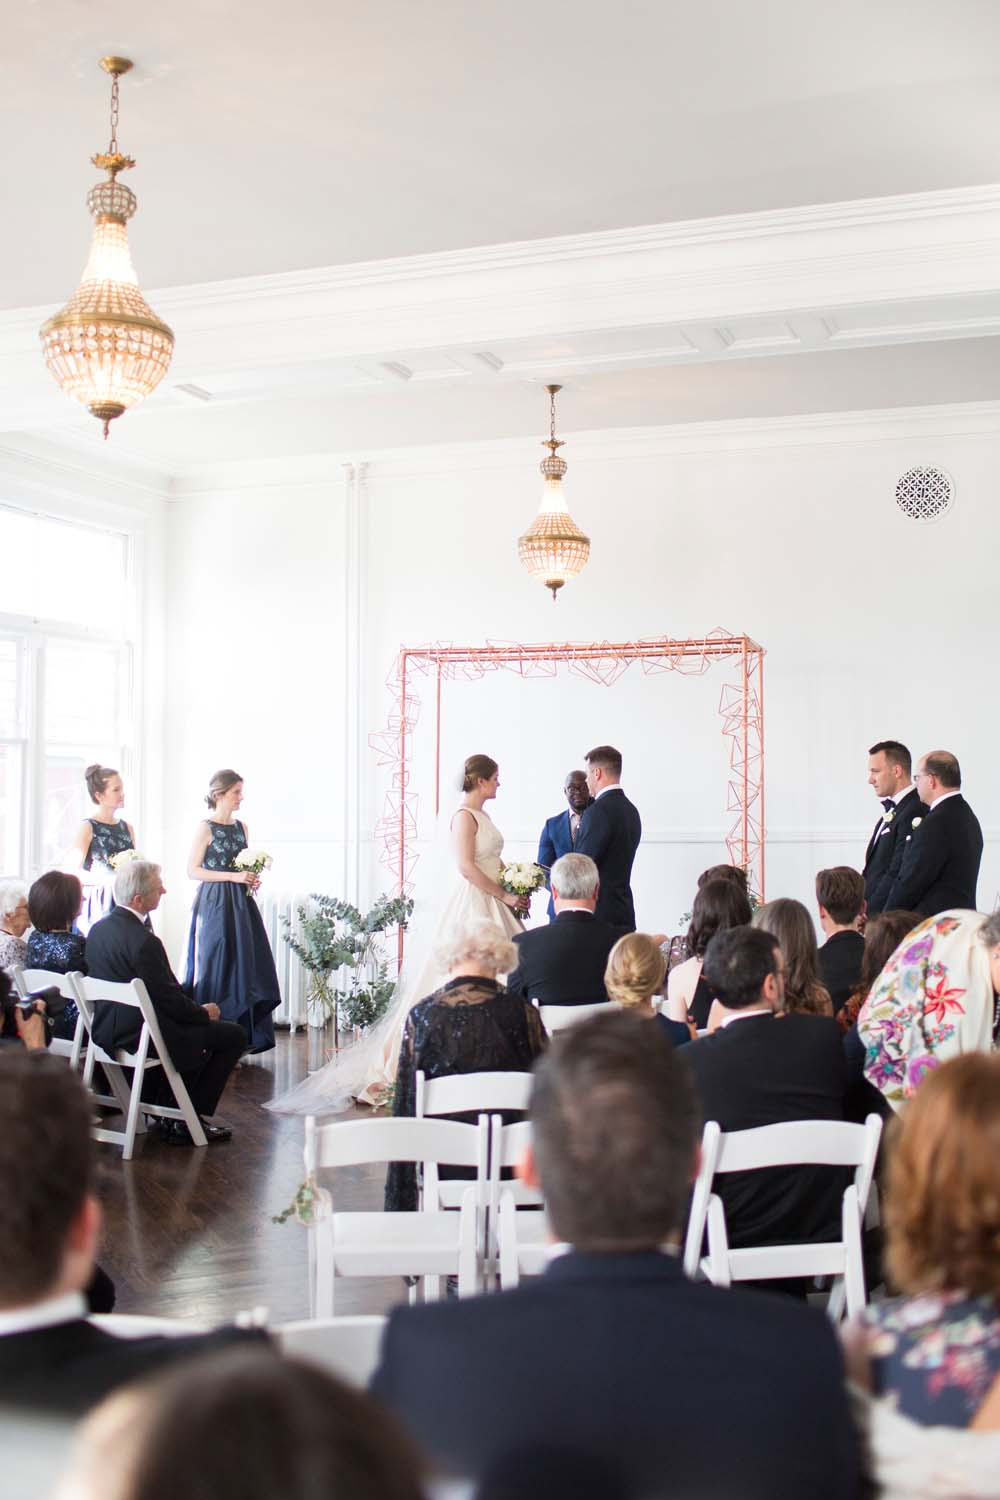 A Modern Wedding At The Great Hall In Toronto - arch